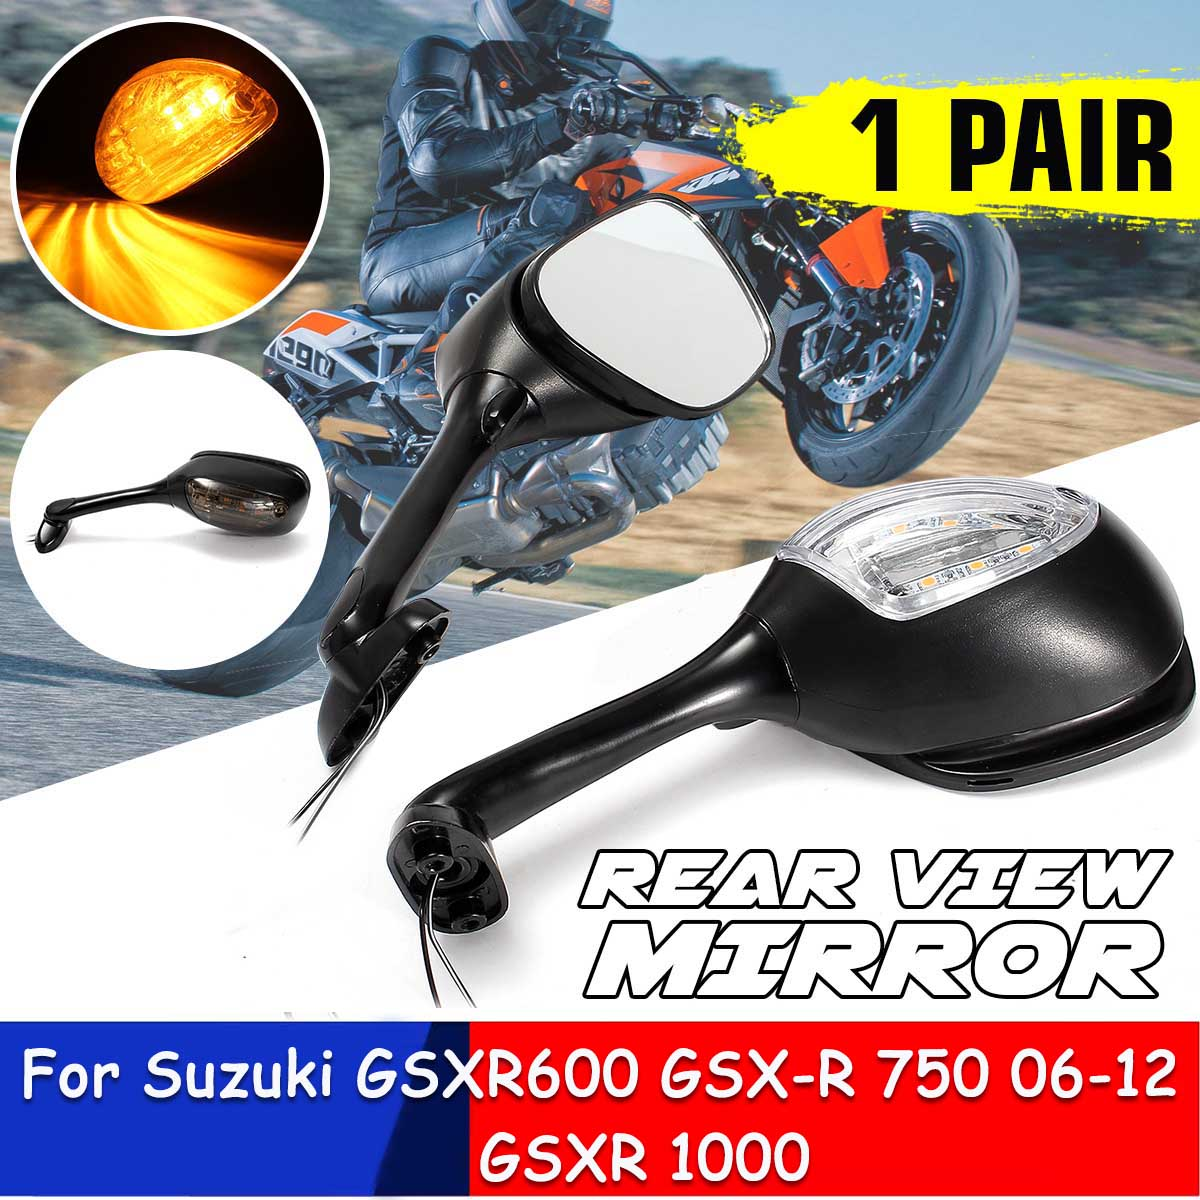 2pcs Motorcycle <font><b>LED</b></font> Turn Signal Rear View Mirrors For <font><b>Suzuki</b></font> <font><b>GSXR</b></font> 600 <font><b>750</b></font> 2006 2007 2008 2009 2010 <font><b>GSXR</b></font> 1000 2005 2006 2007 2008 image